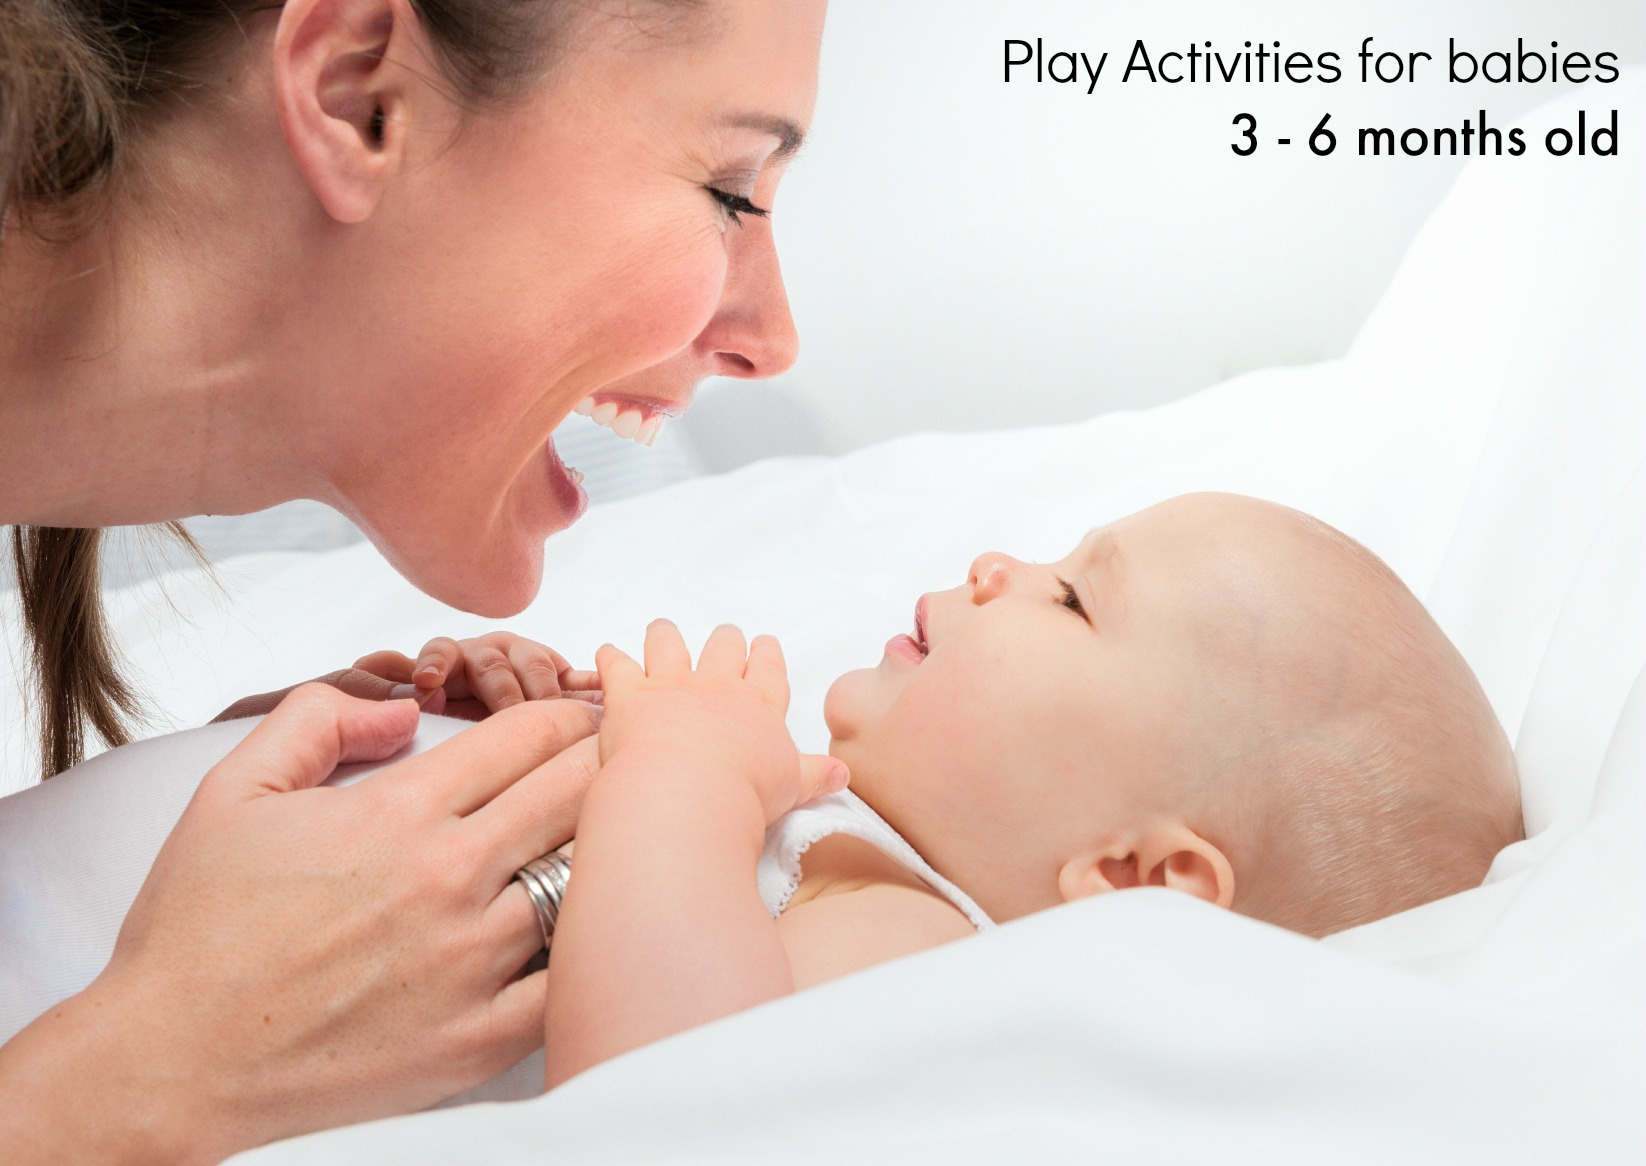 Go Ask Mum Play Activities For Babies Aged 3 To 6 Months